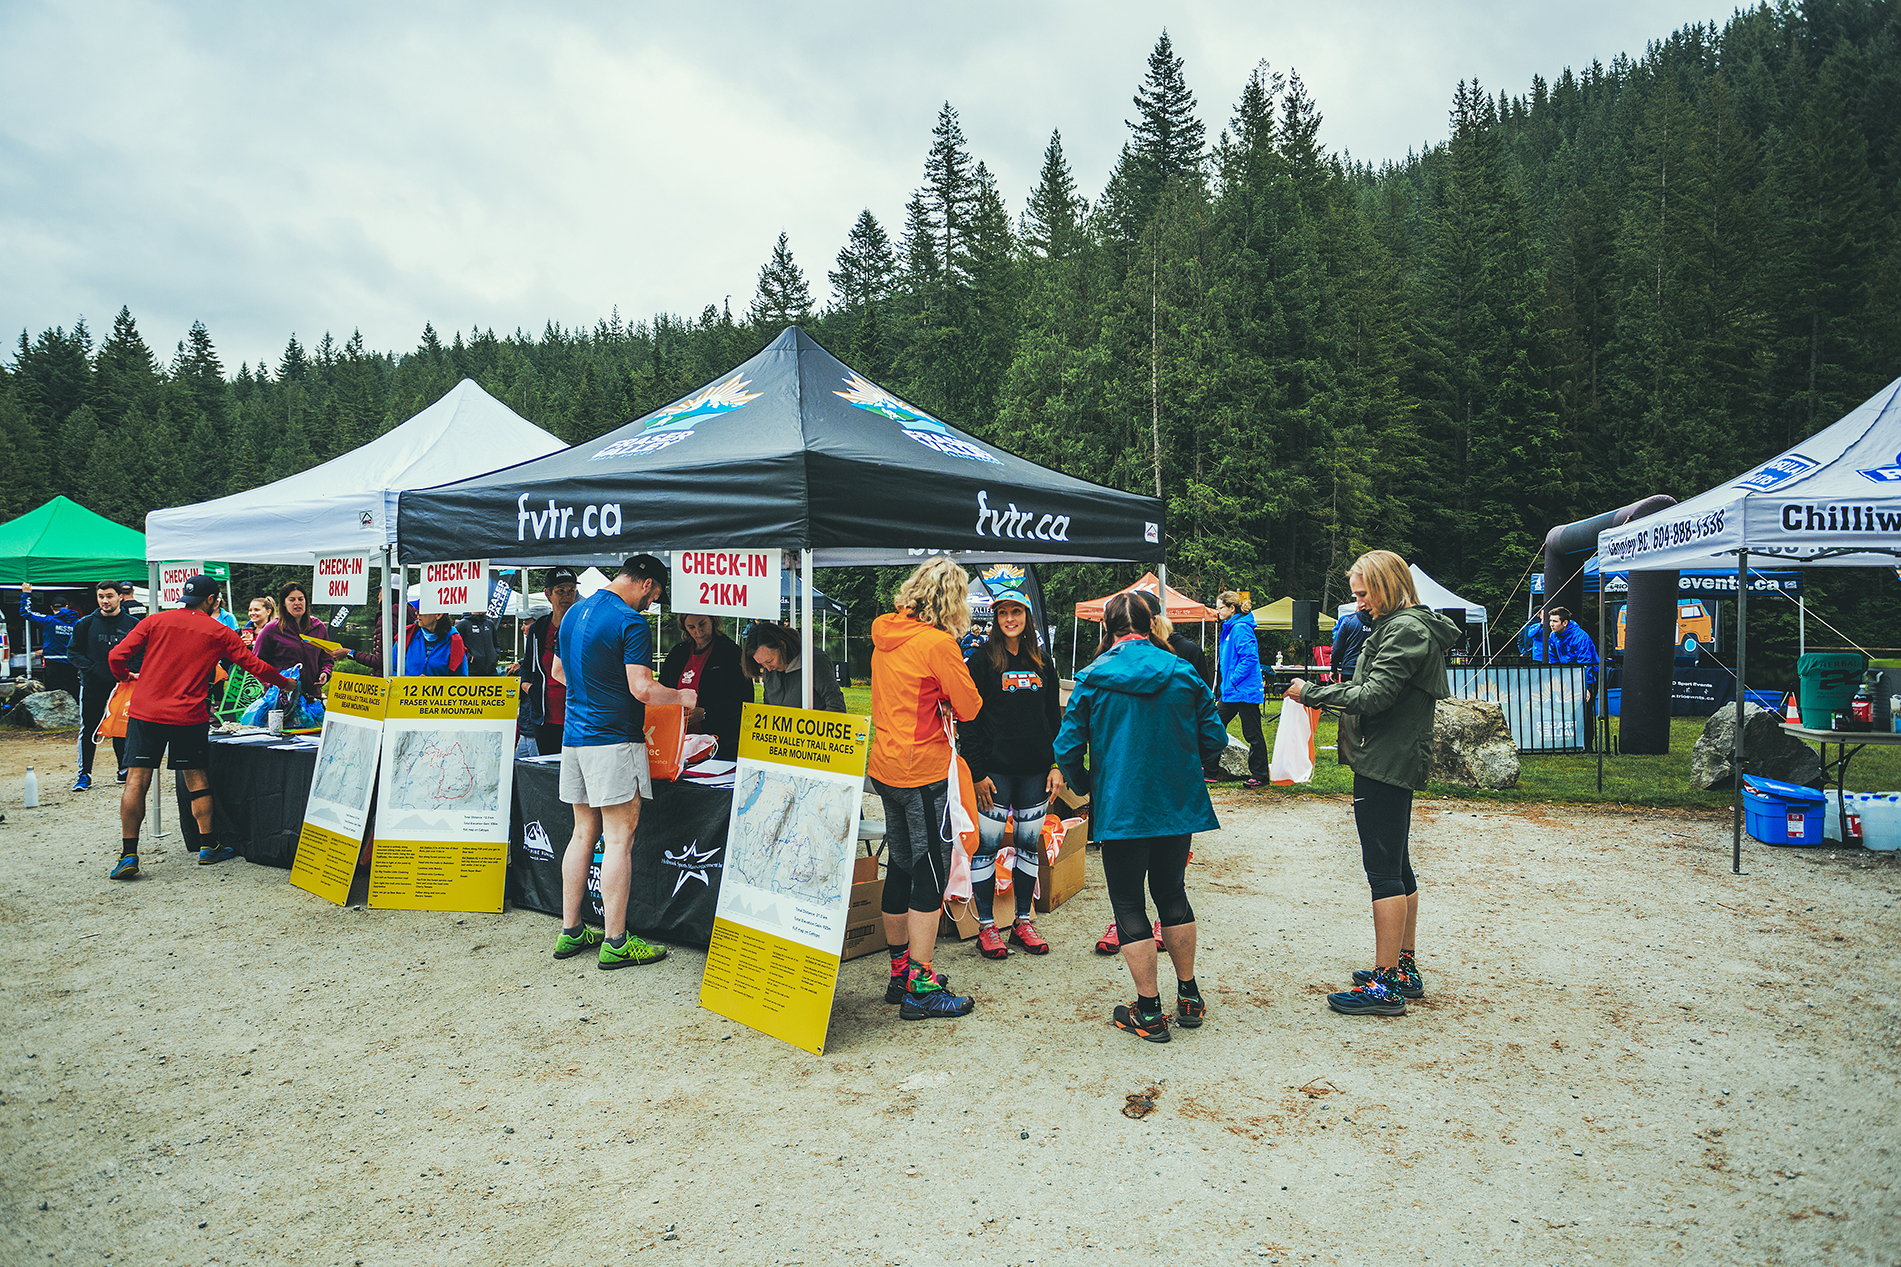 Fraser Valley Trail Races - Bear Mountain - IMG_2316 by Brice Ferre Studio - Vancouver Portrait Adventure and Athlete Photographer.jpg